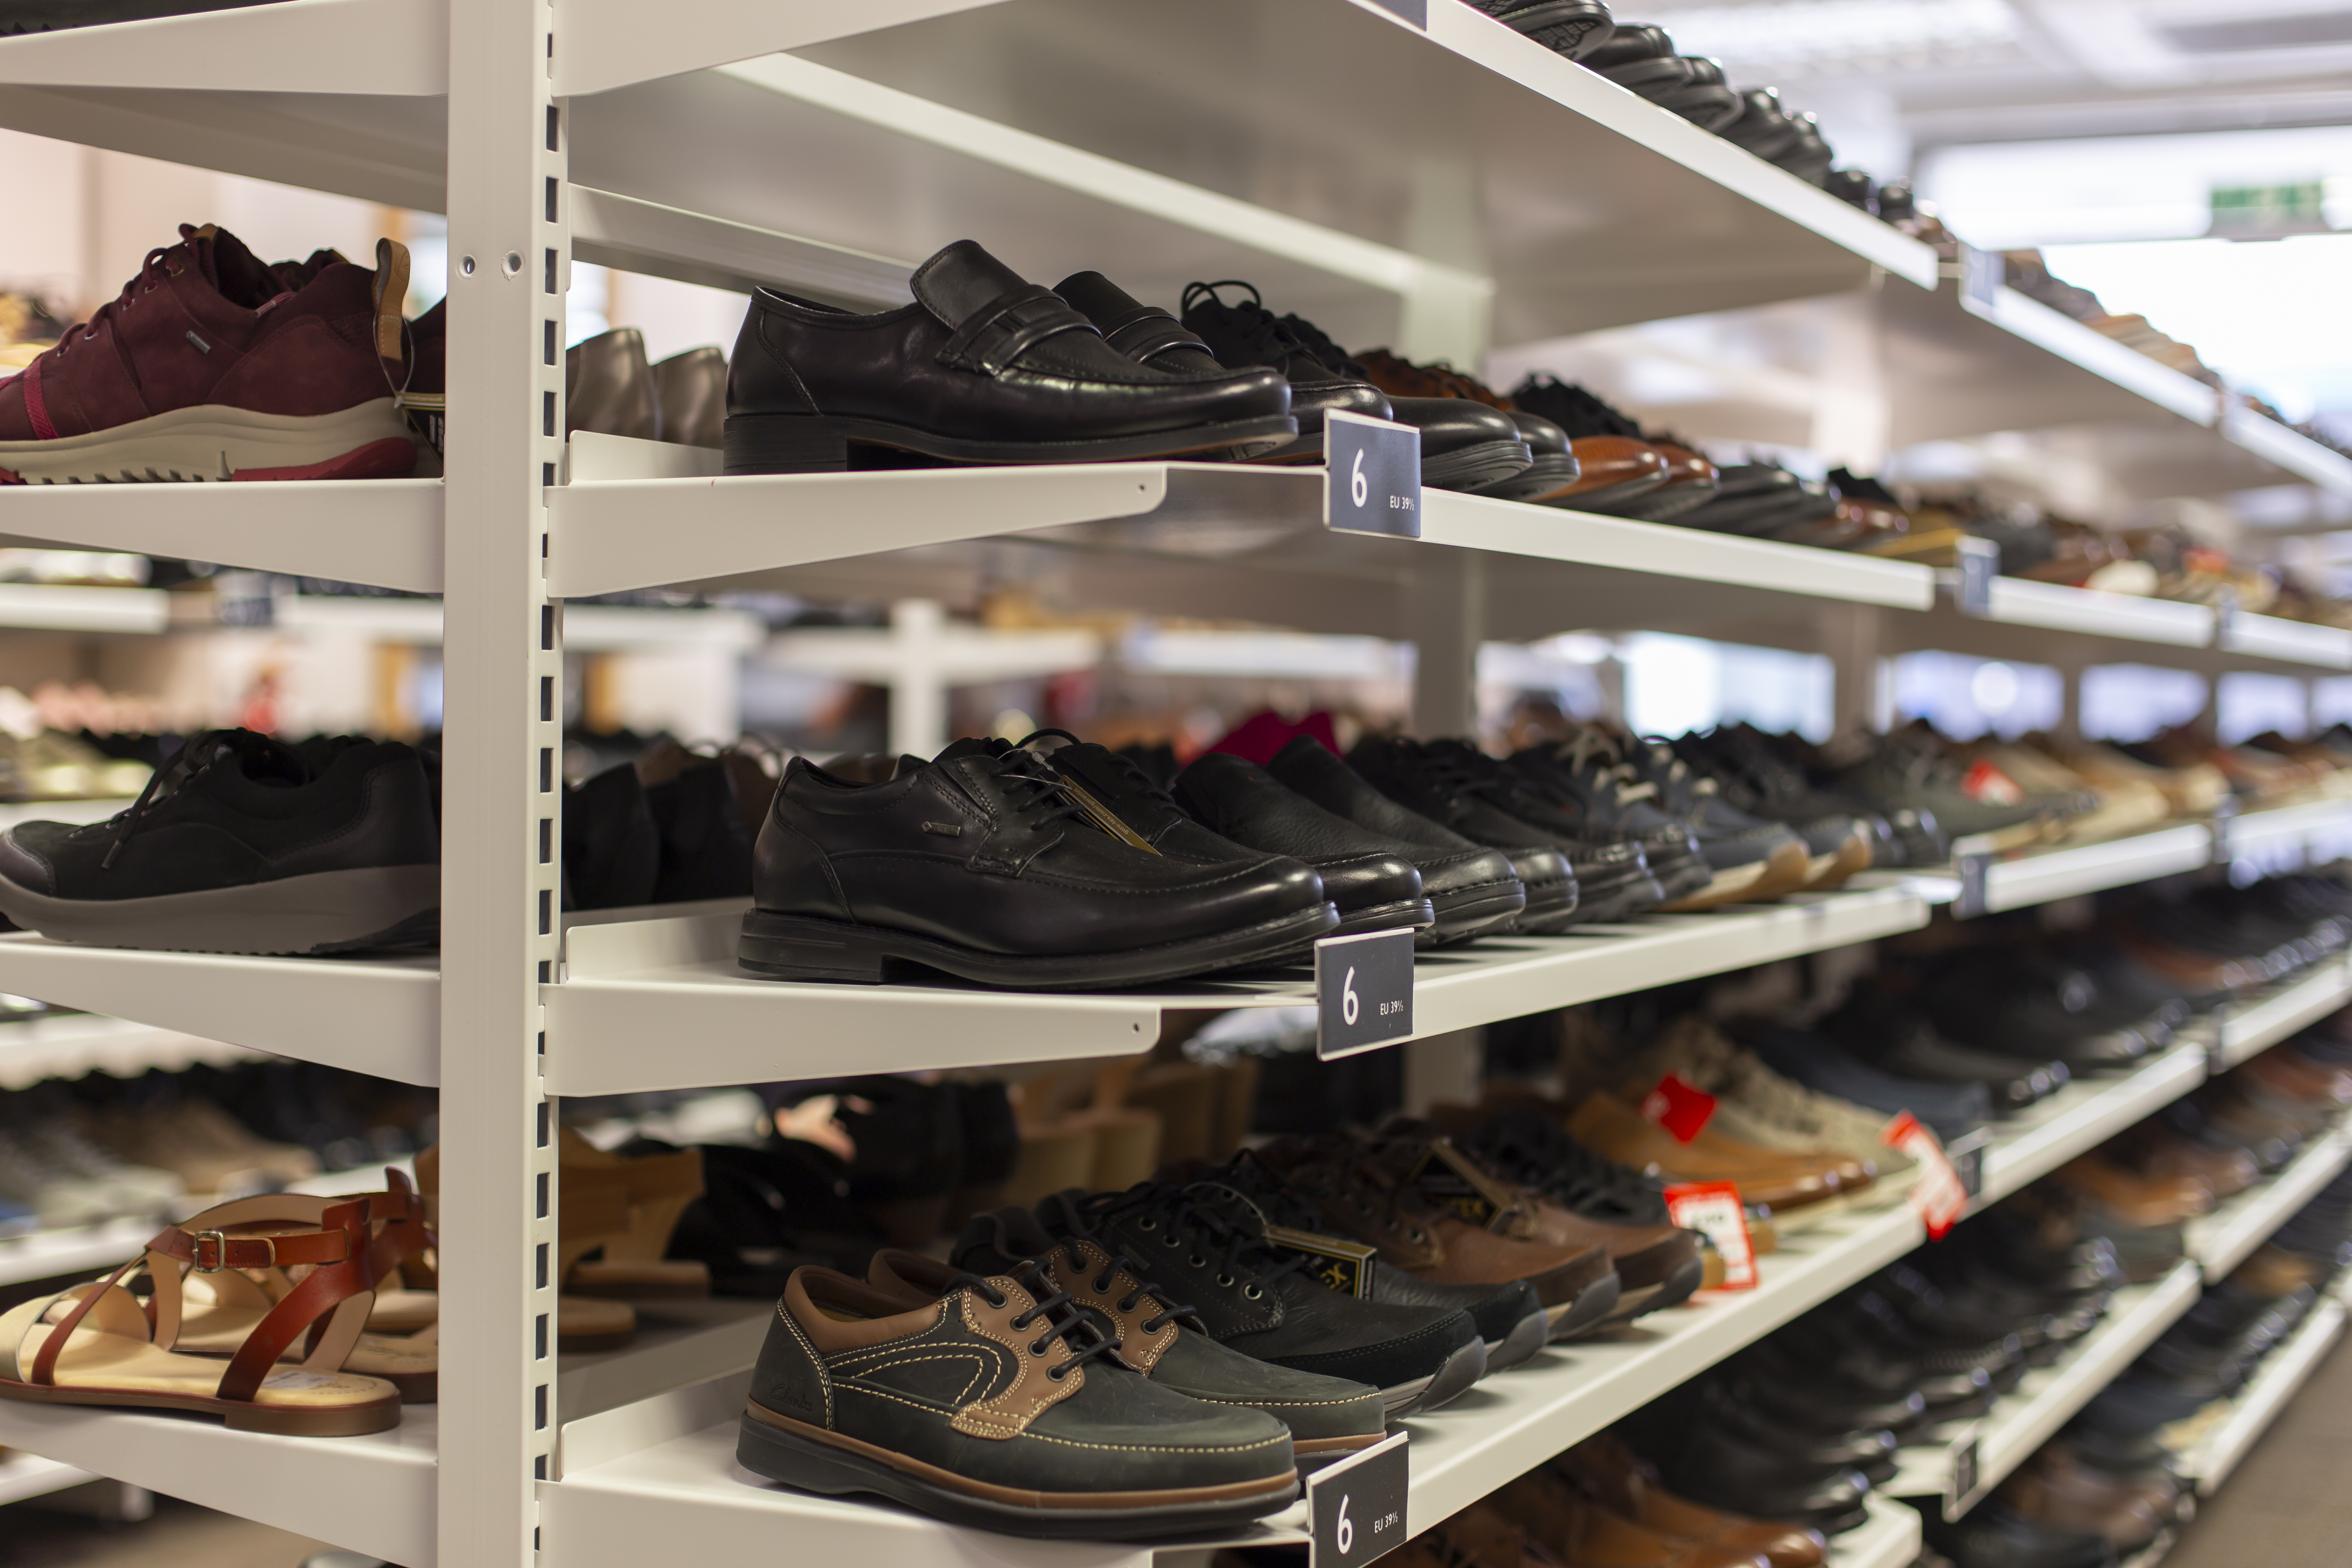 Clarks Shoes On Shelves